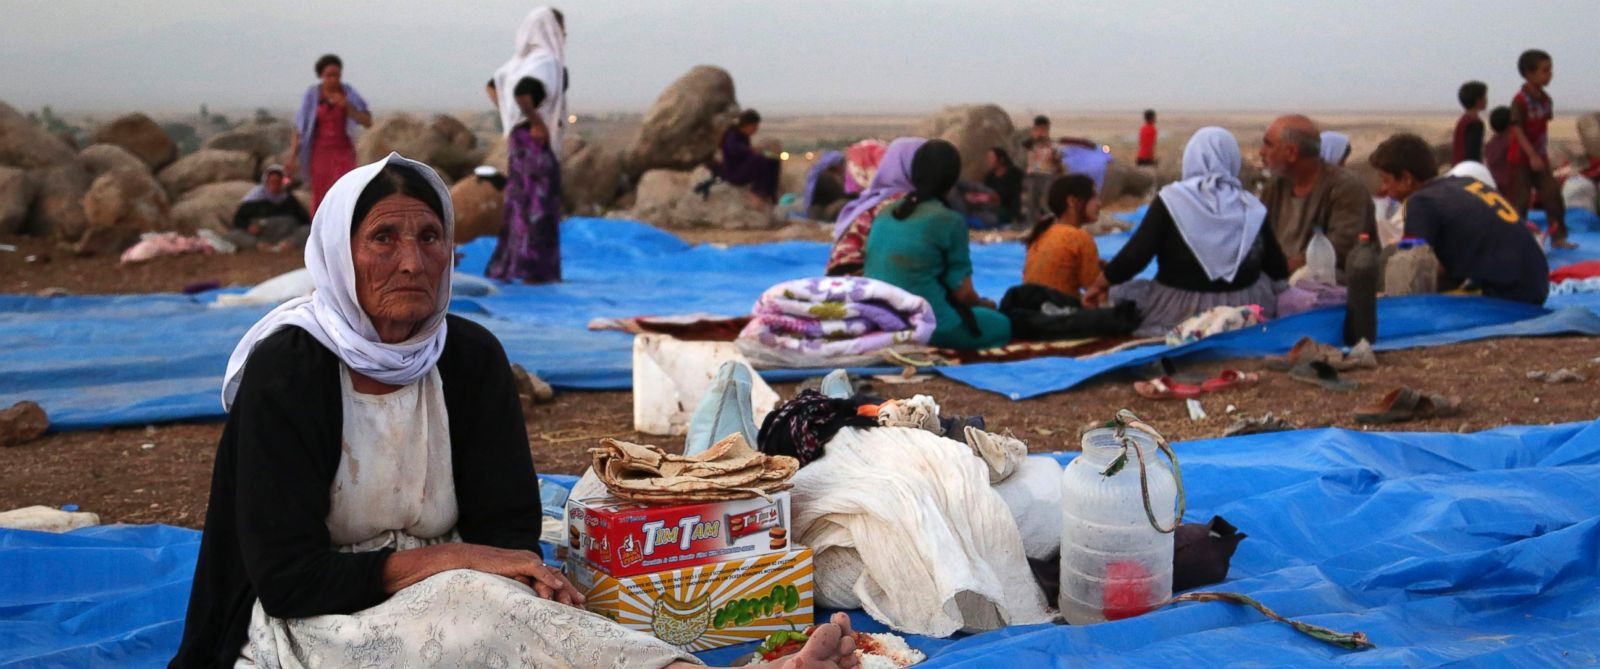 PHOTO: Displaced Iraqis from the Yazidi community settle at a camp at Derike, Syria, Sunday, Aug. 10, 2014.